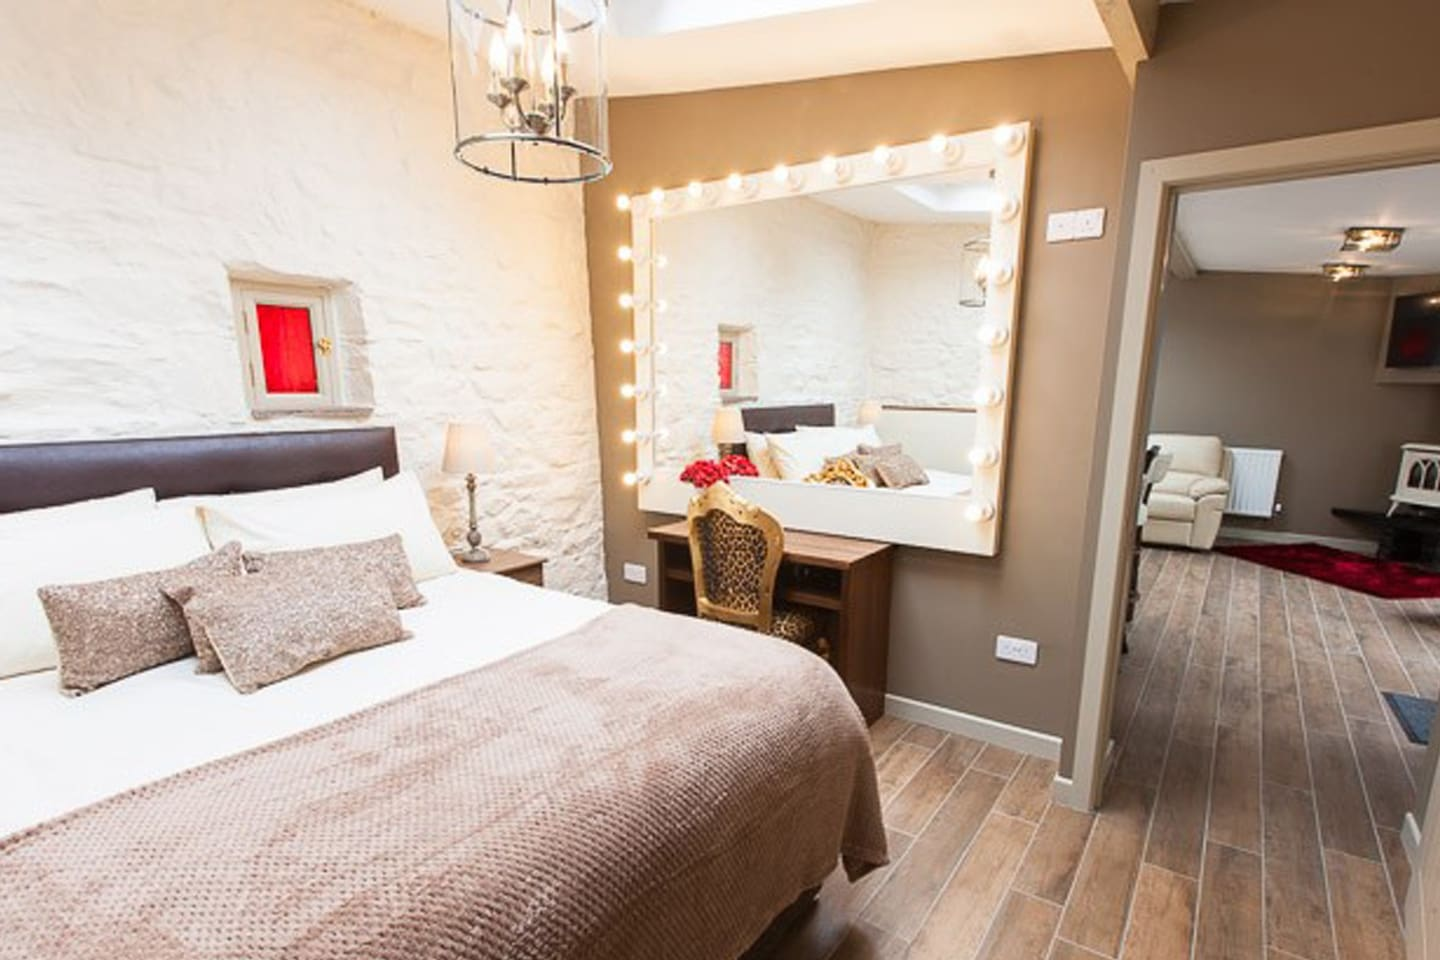 A 13th century cottage beautifully restored to a five star standard